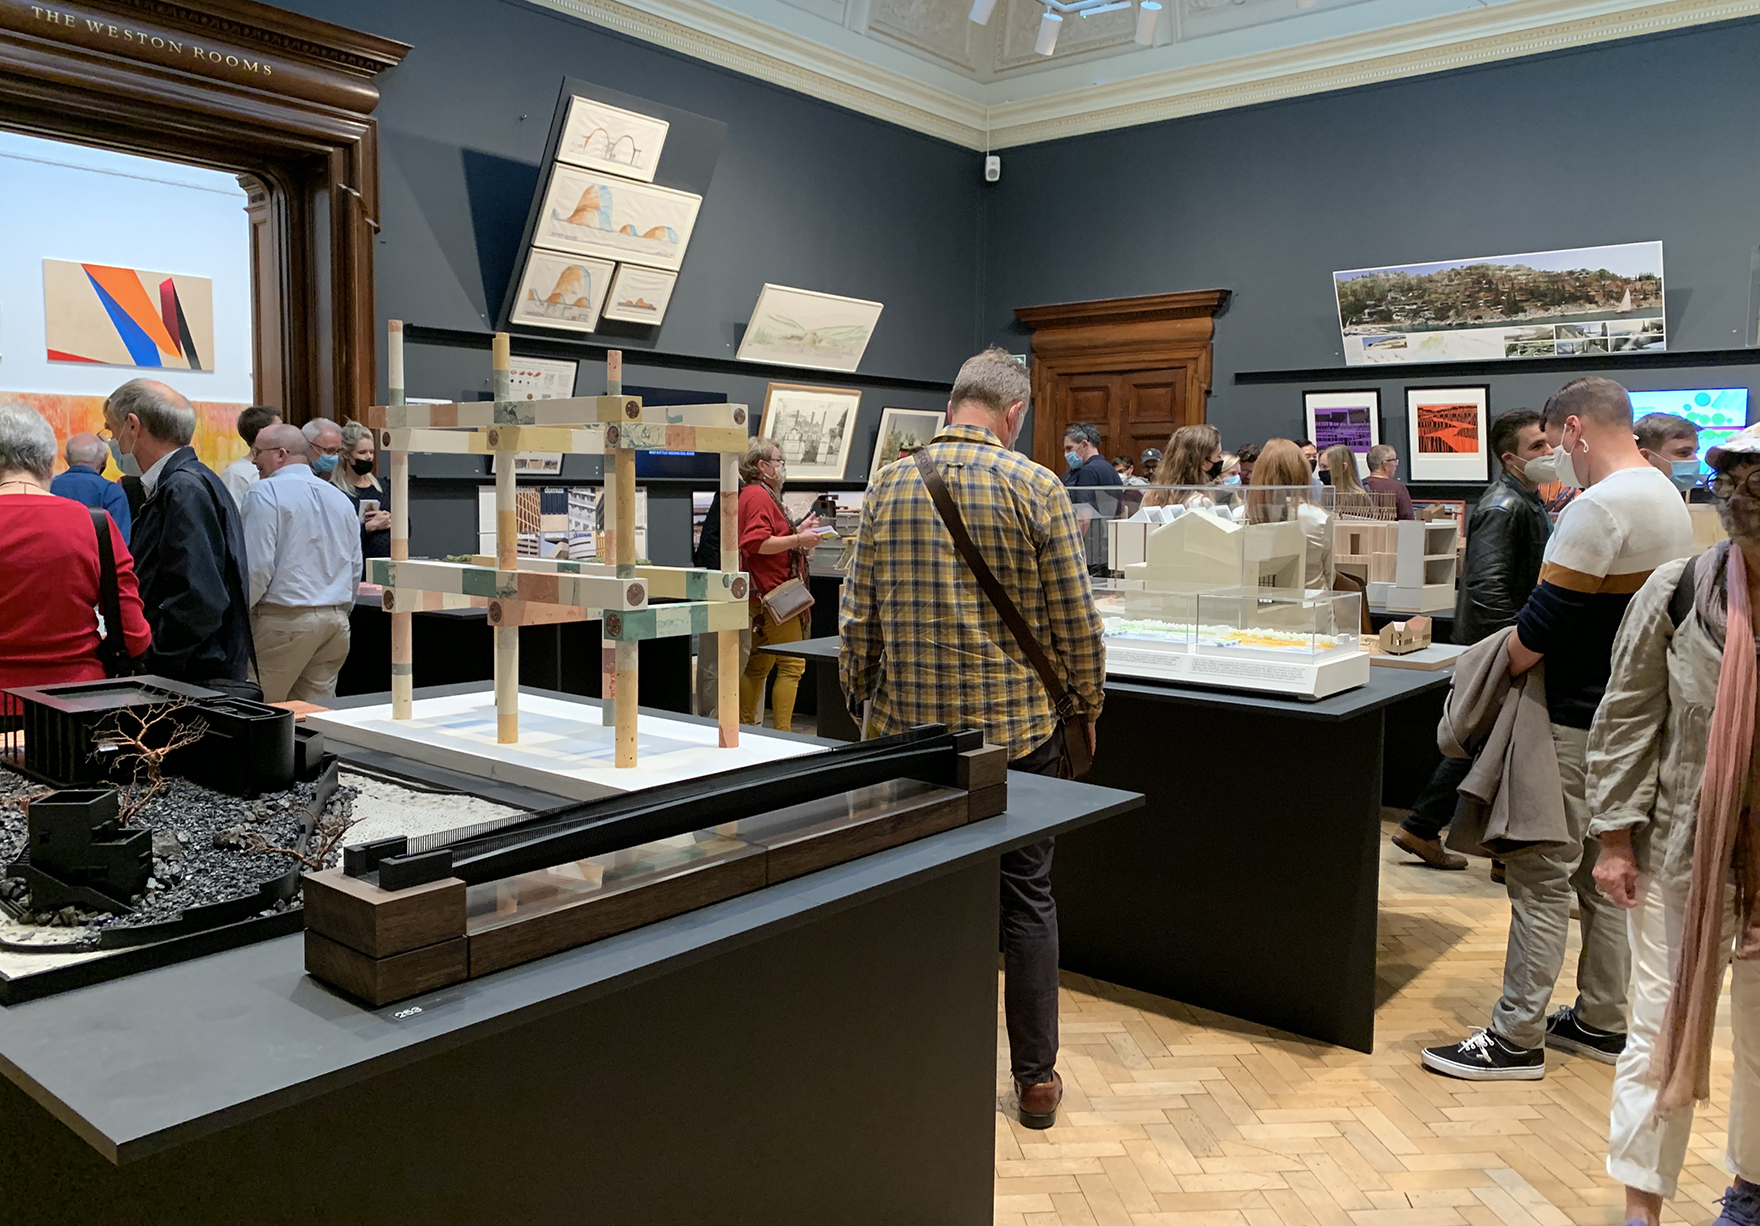 Faulknerbrowns Model Royal Academy Summer Exhibition Bridging Heritage 2021 Architecture Room